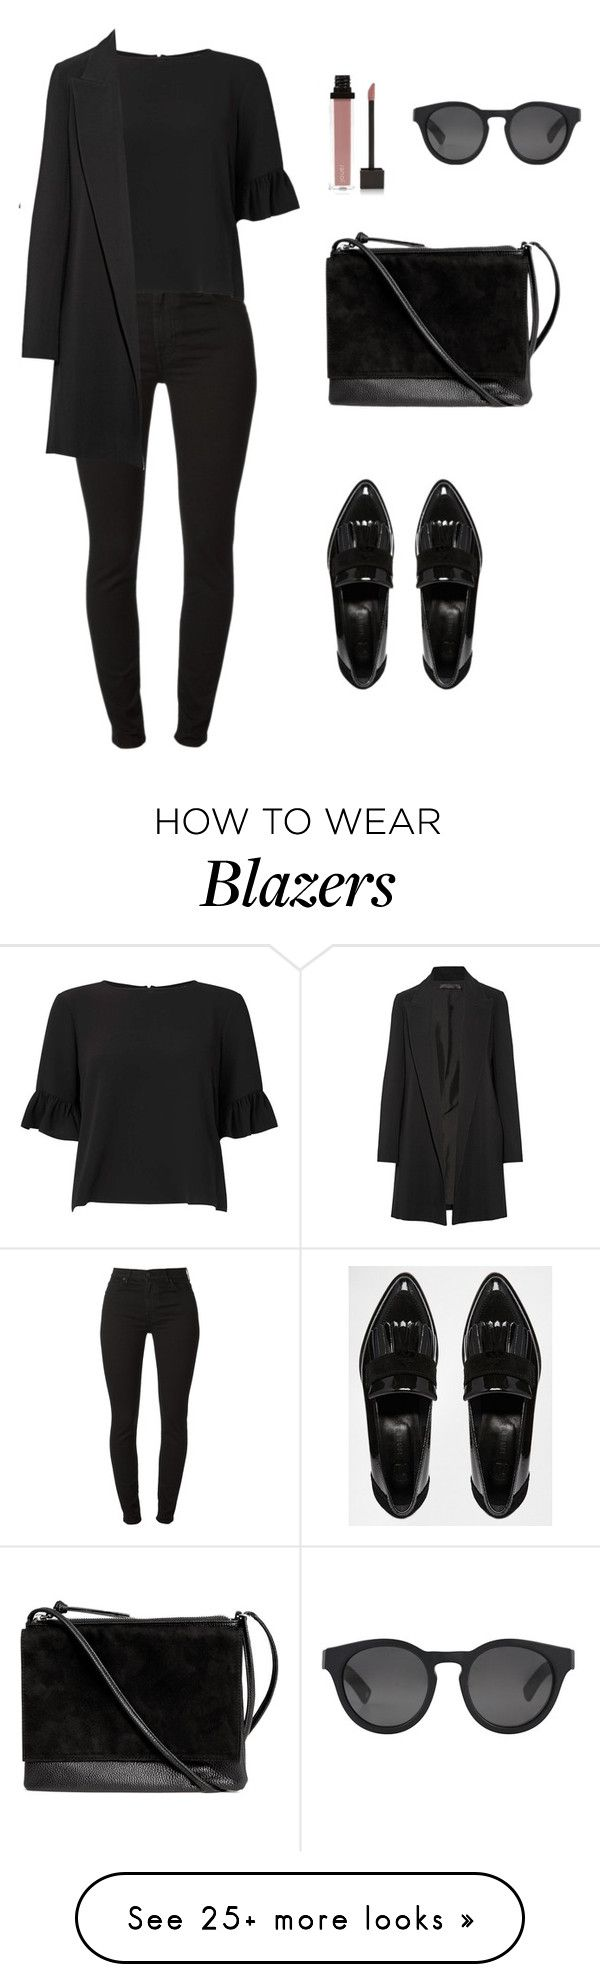 """Untitled #2553"" by meli-g35 on Polyvore featuring Miss Selfridge, River Island, The Row, H&M, Ahlem and Jouer"